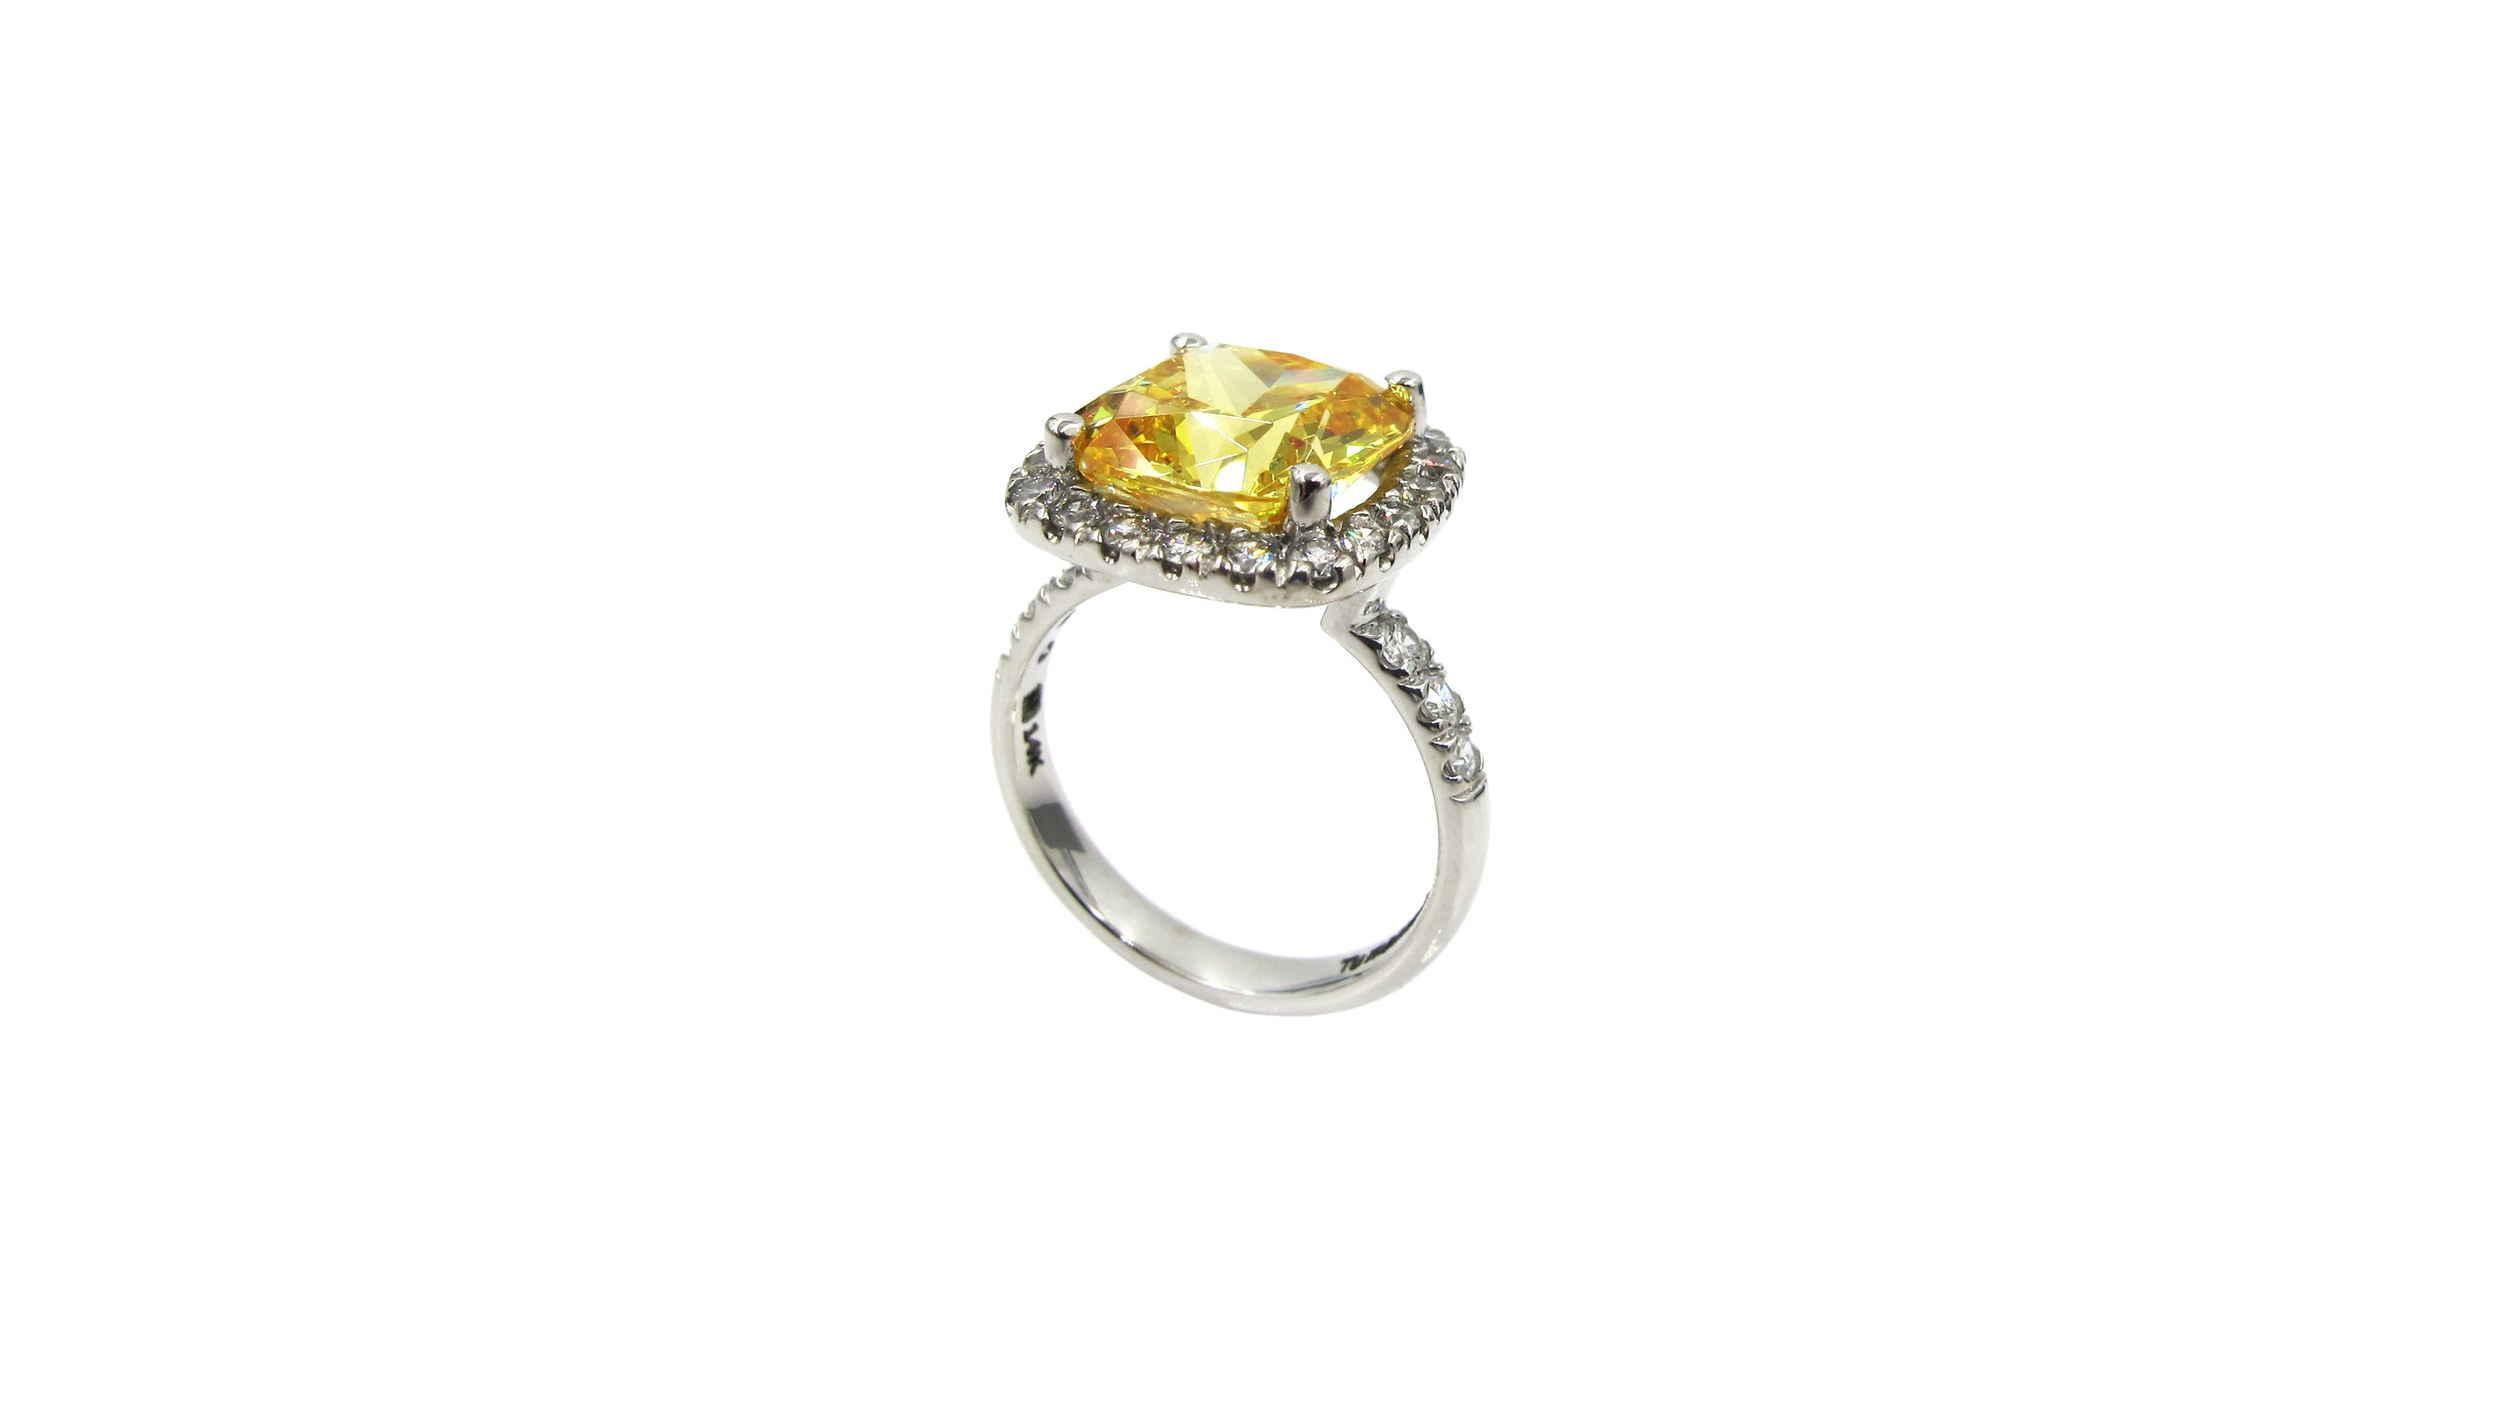 14k White Gold with Yellow Cushion Cut Sapphire Surrounded by a Halo of Micro Pave' Diamonds